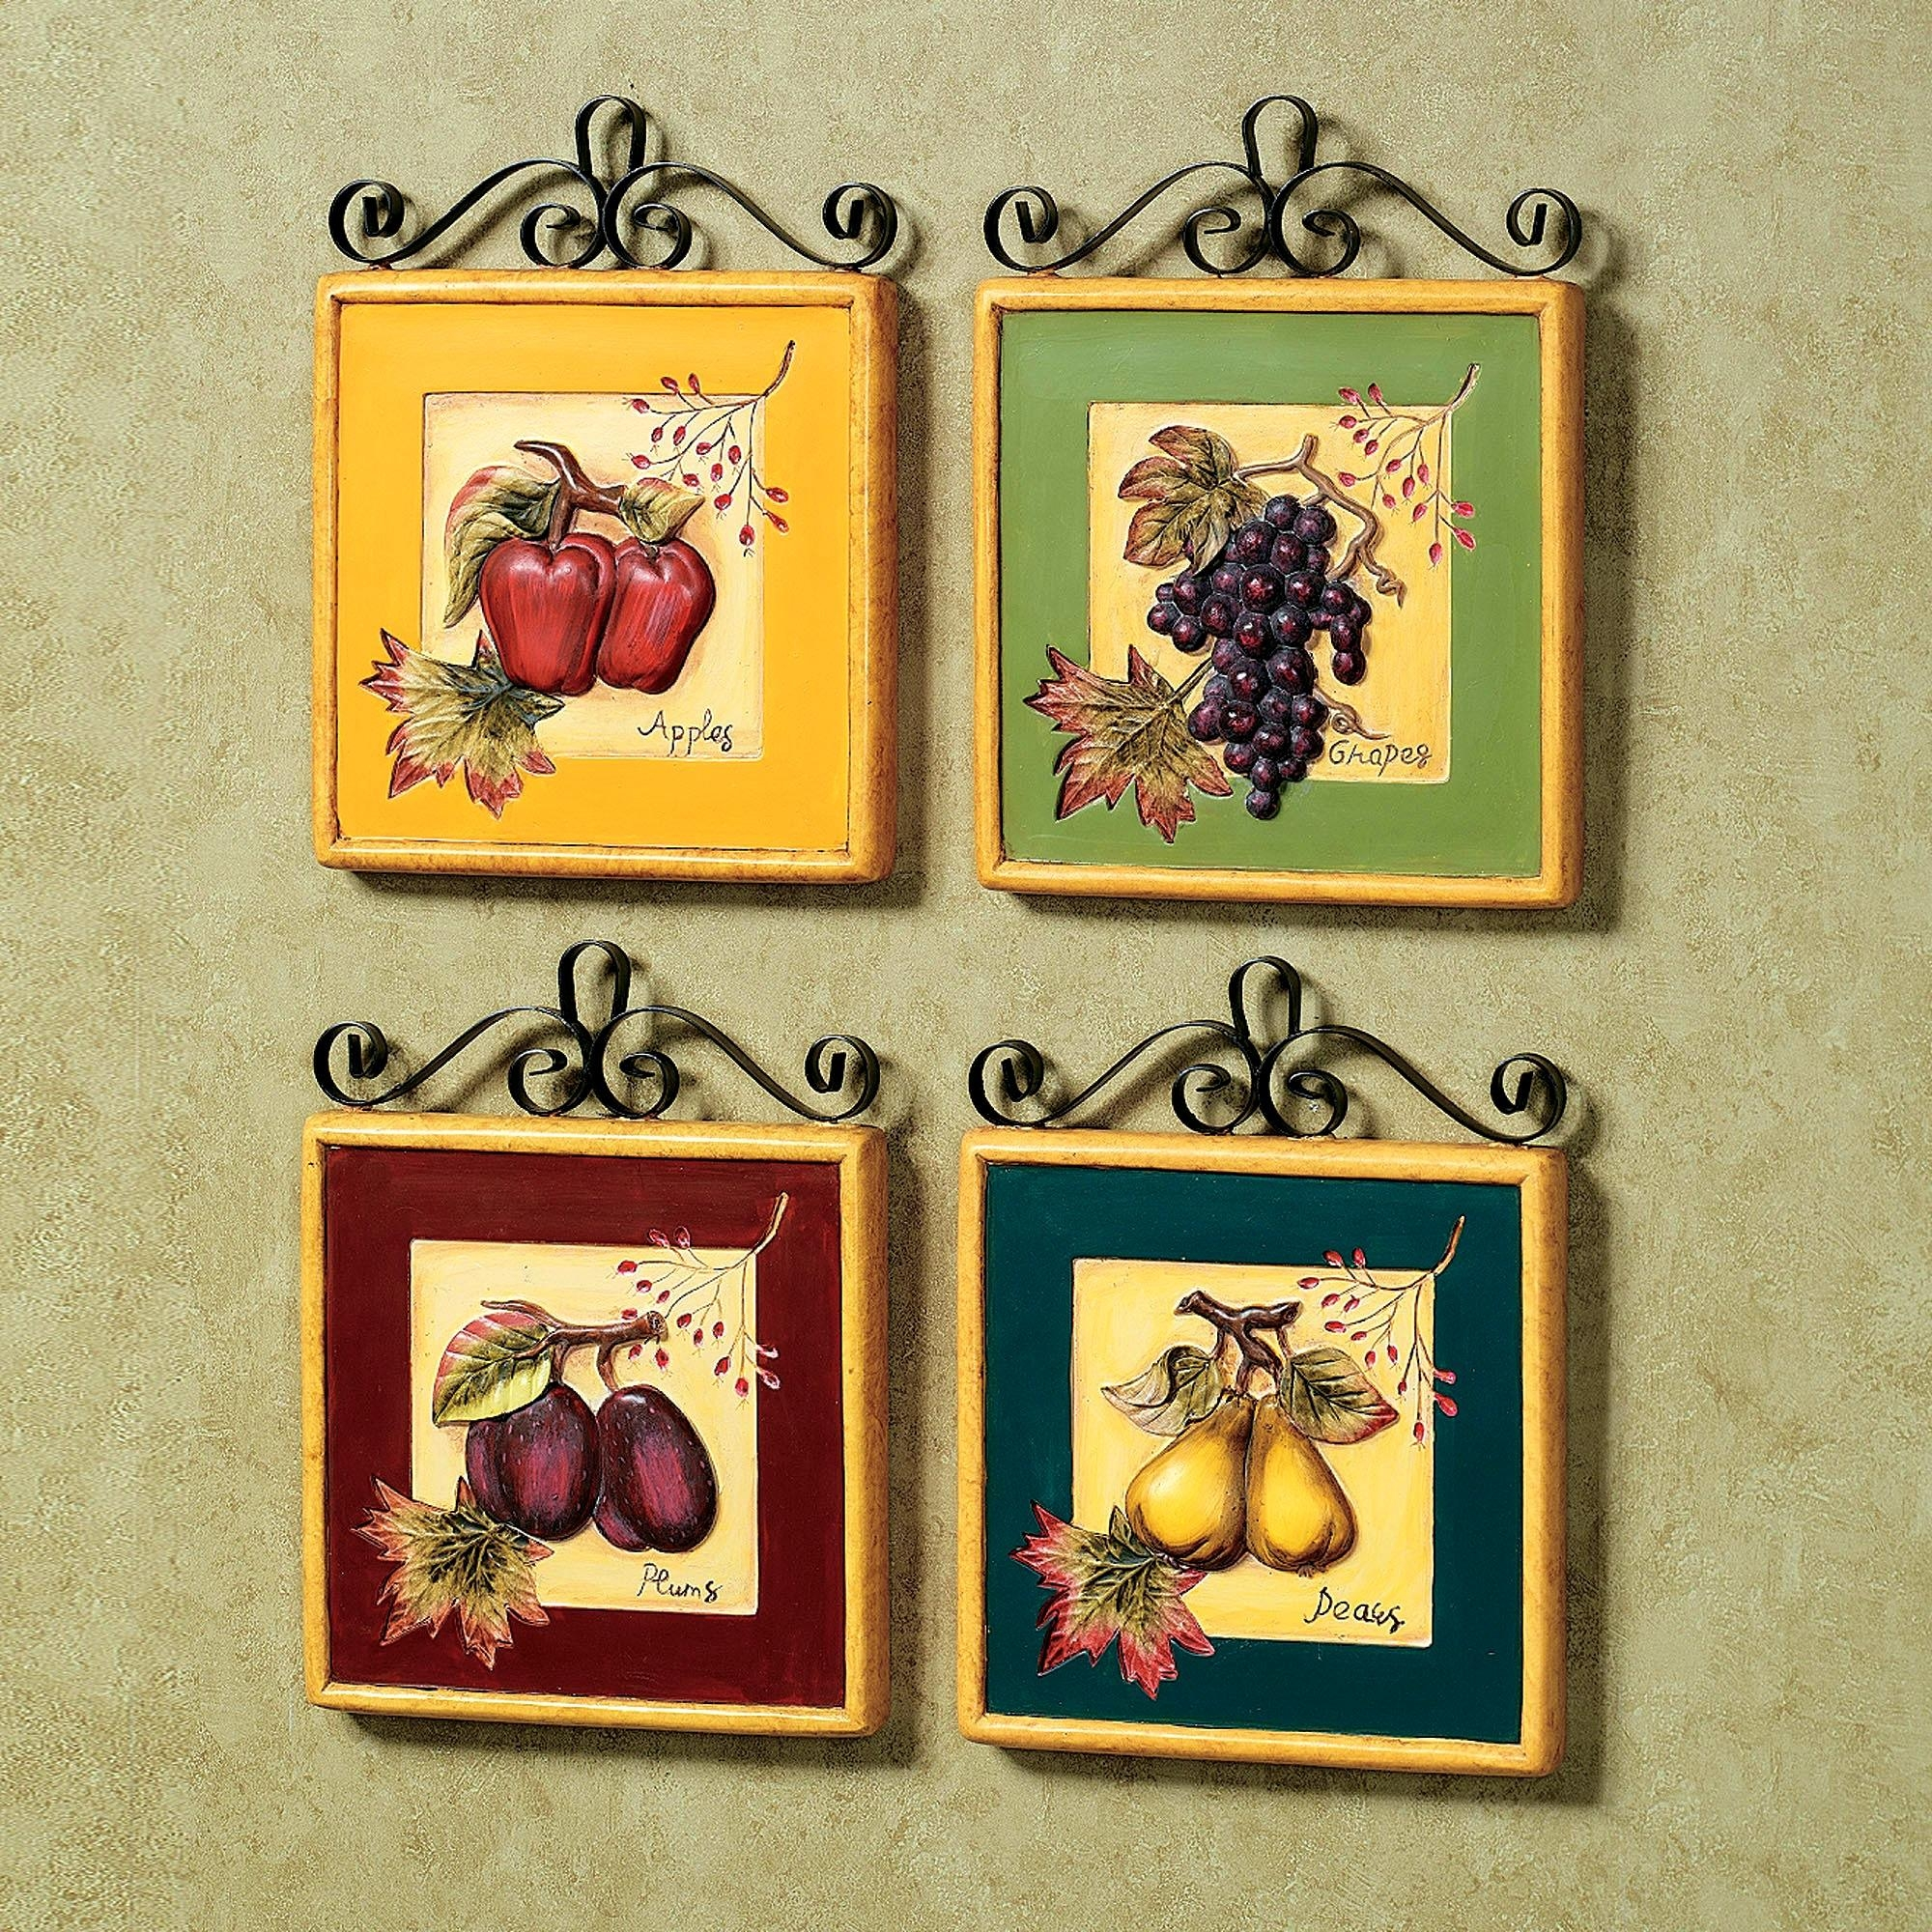 Furniture : Fascinating Fat Italian Chef Kitchen Wall Decor Regarding Italian Coffee Wall Art (Image 10 of 20)